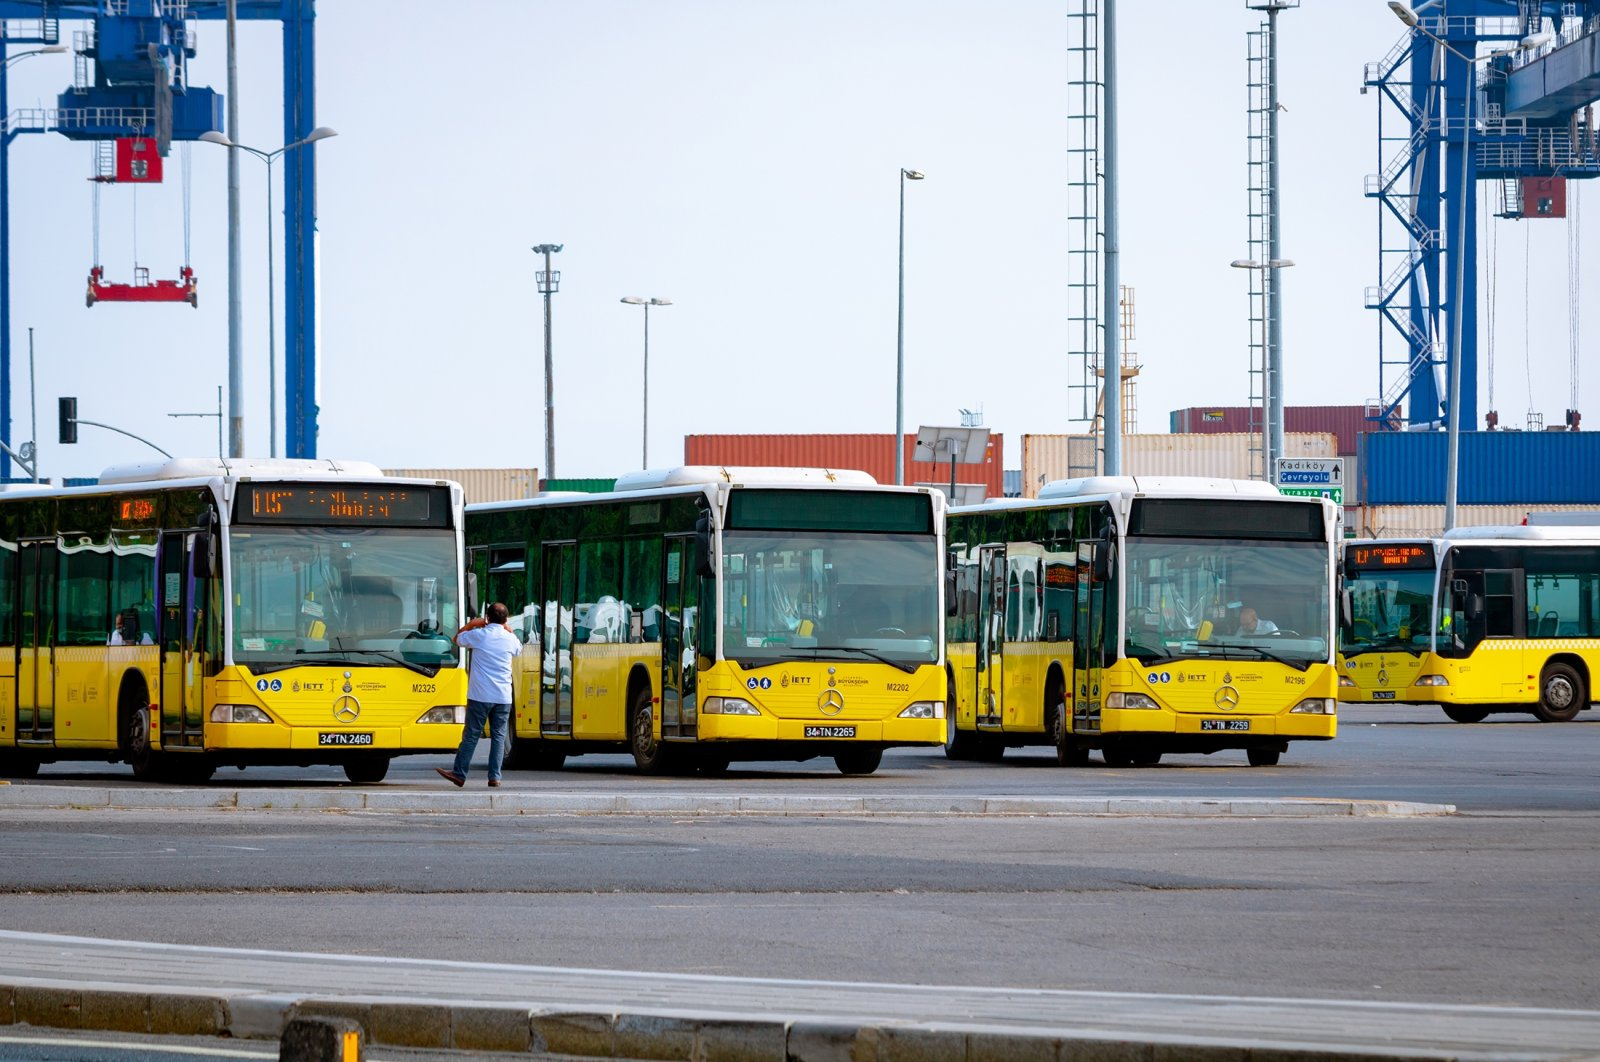 Municipality buses at a bus depot, in Istanbul, Turkey, May 28, 2021. (Shutterstock Photo)